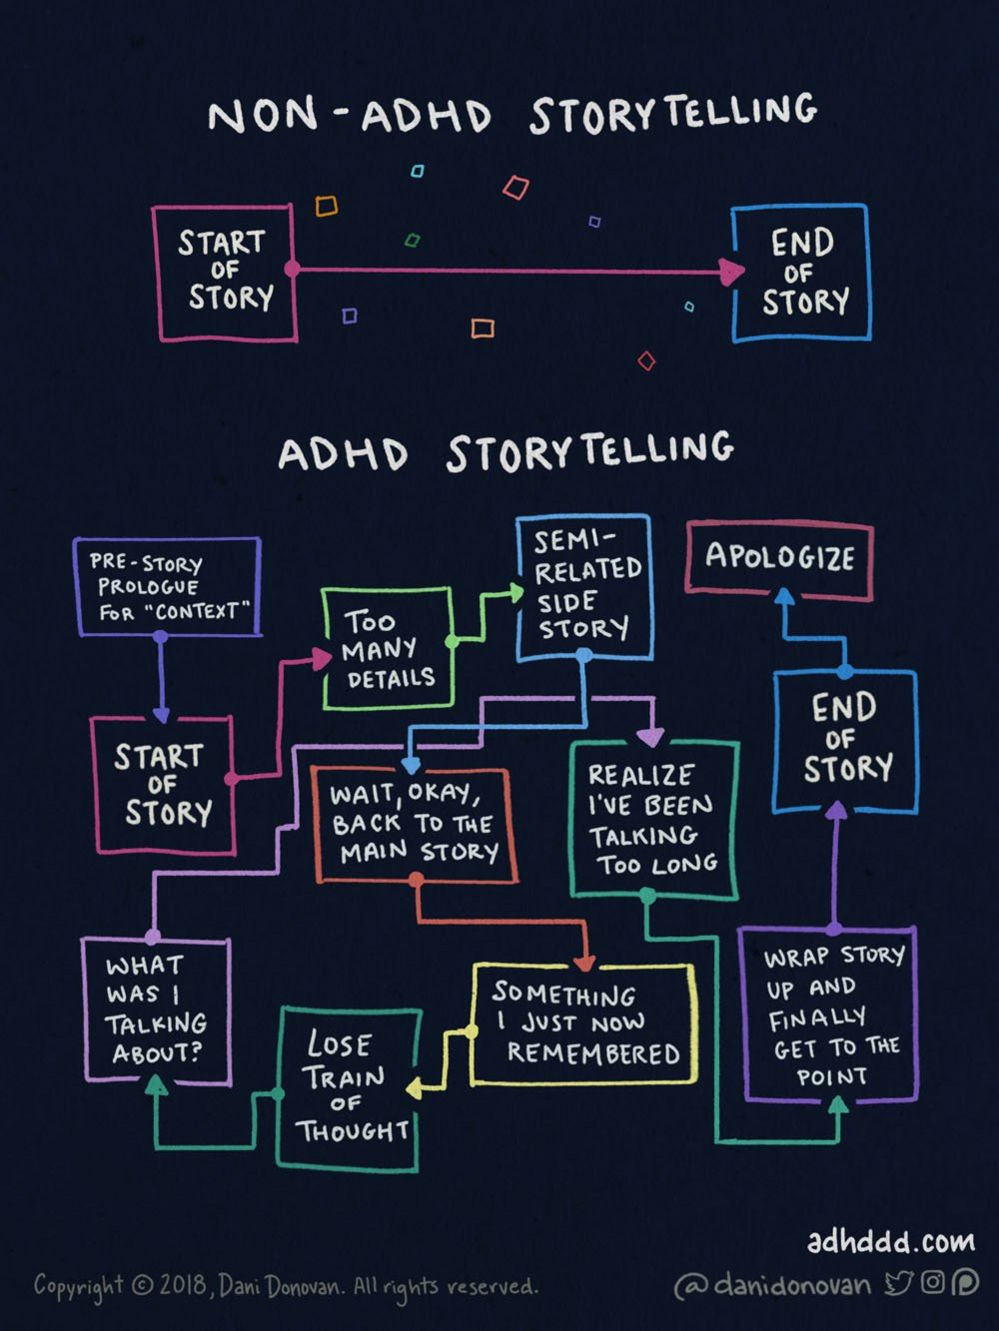 Flow chart split into two sections. First section, entitled 'Non ADHD Storytelling' shows a straight line between two boxes marked 'Start of Story' and 'End of Story'. Second section, entitled 'ADHD Storytelling' has a multitude of boxes including 'What was I talking about' and 'Lose train of thought' before the end of the story is eventually reached.